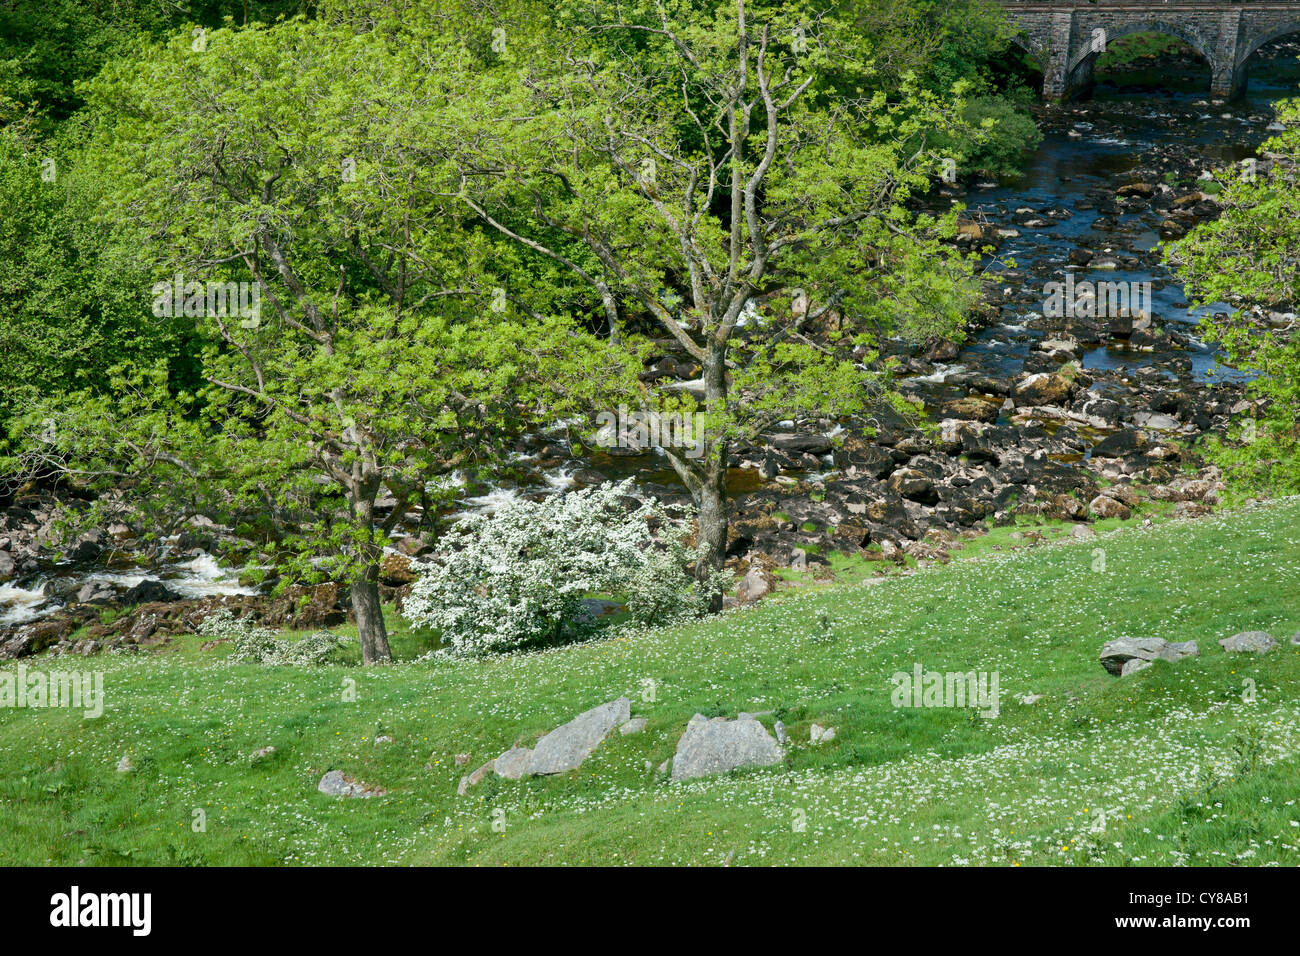 SONY DSC Low lying river extending from beneath a stone bridge weaving a course beside trees, plants and rocks - Stock Image